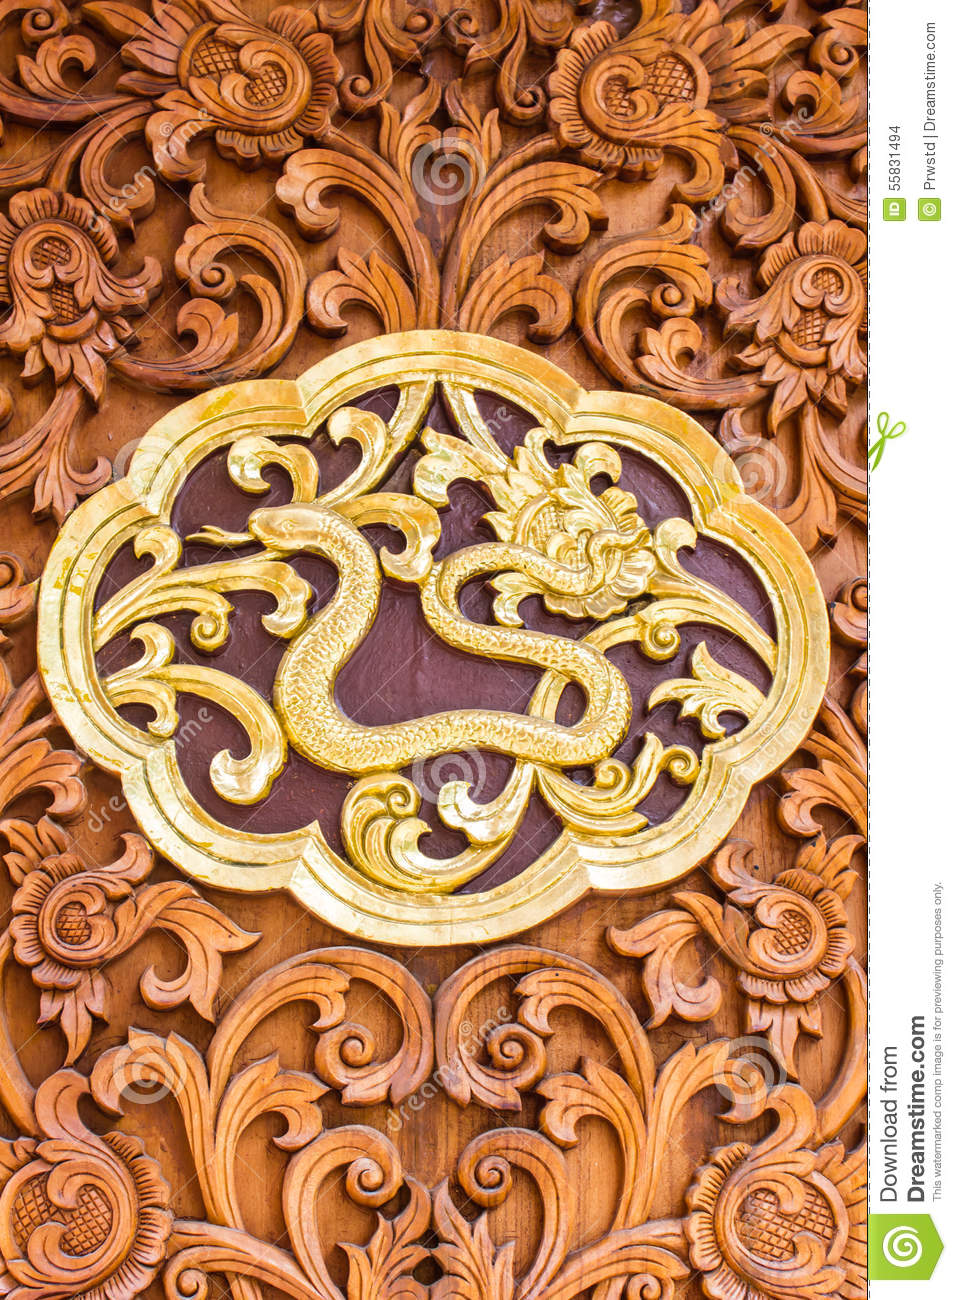 Golden sculptures on the wall in temple royalty free stock